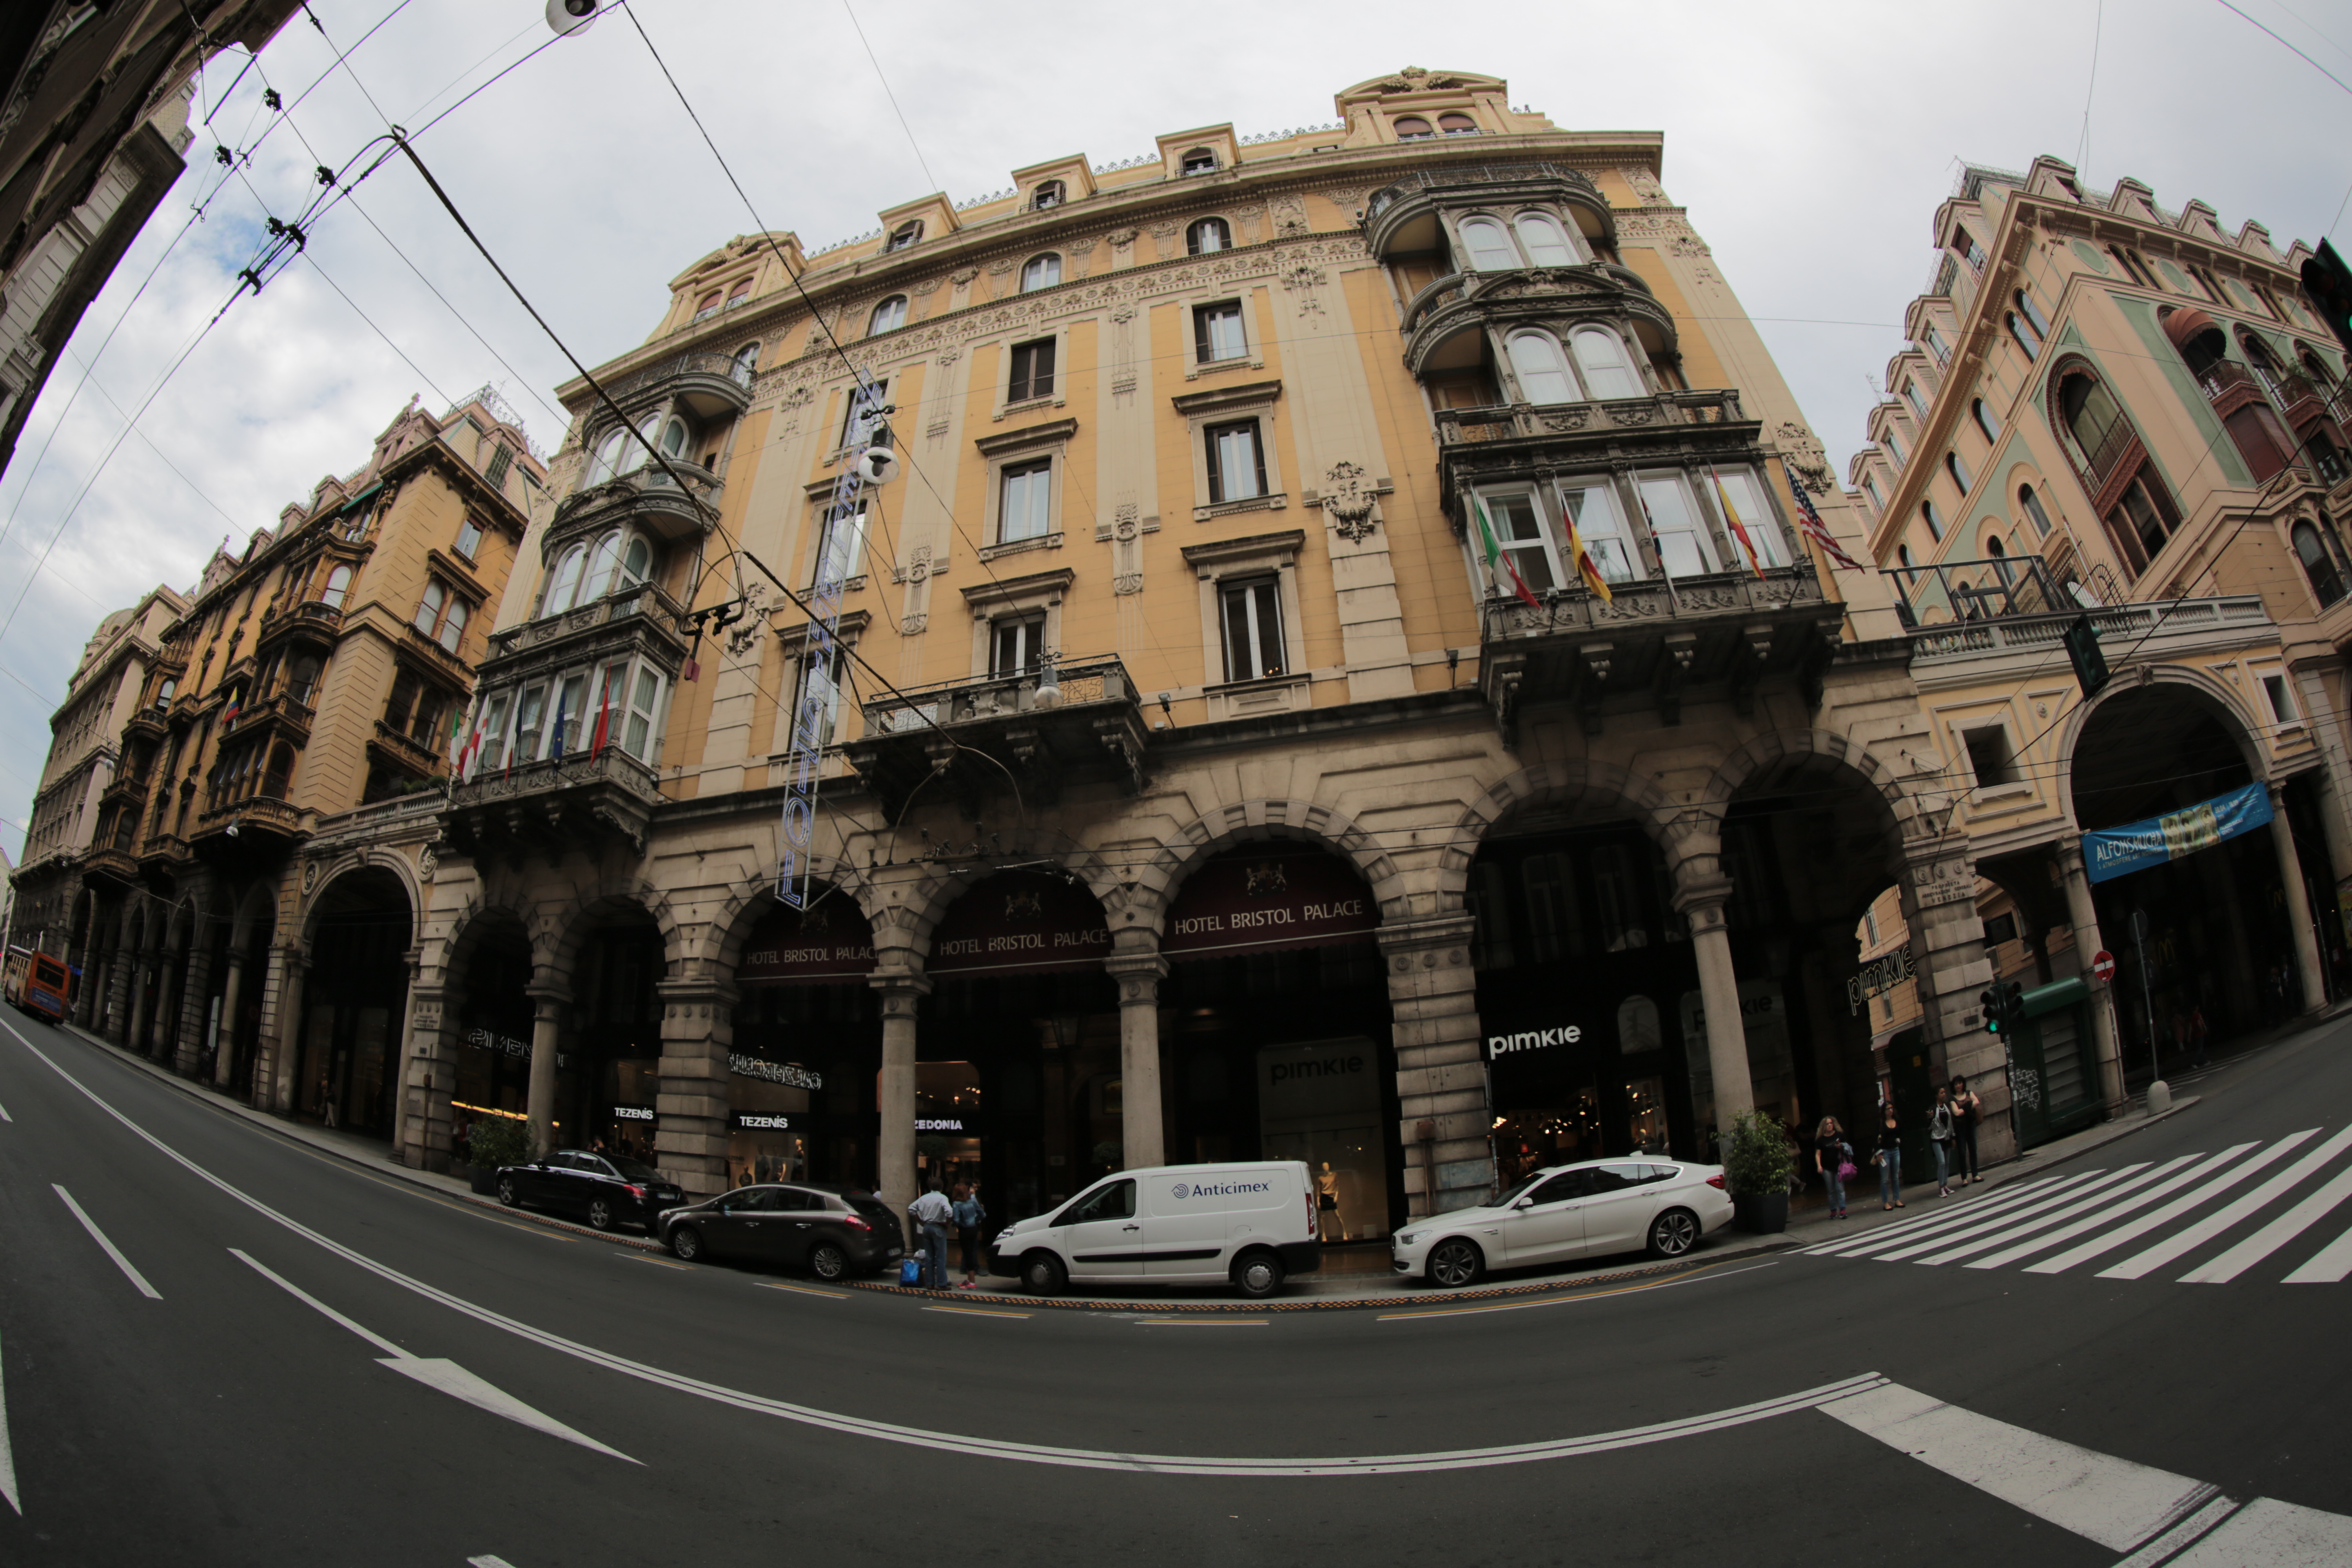 File Hotel Bristol Palace Genoa Italy Photographed In 2016 258a8235 Jpg